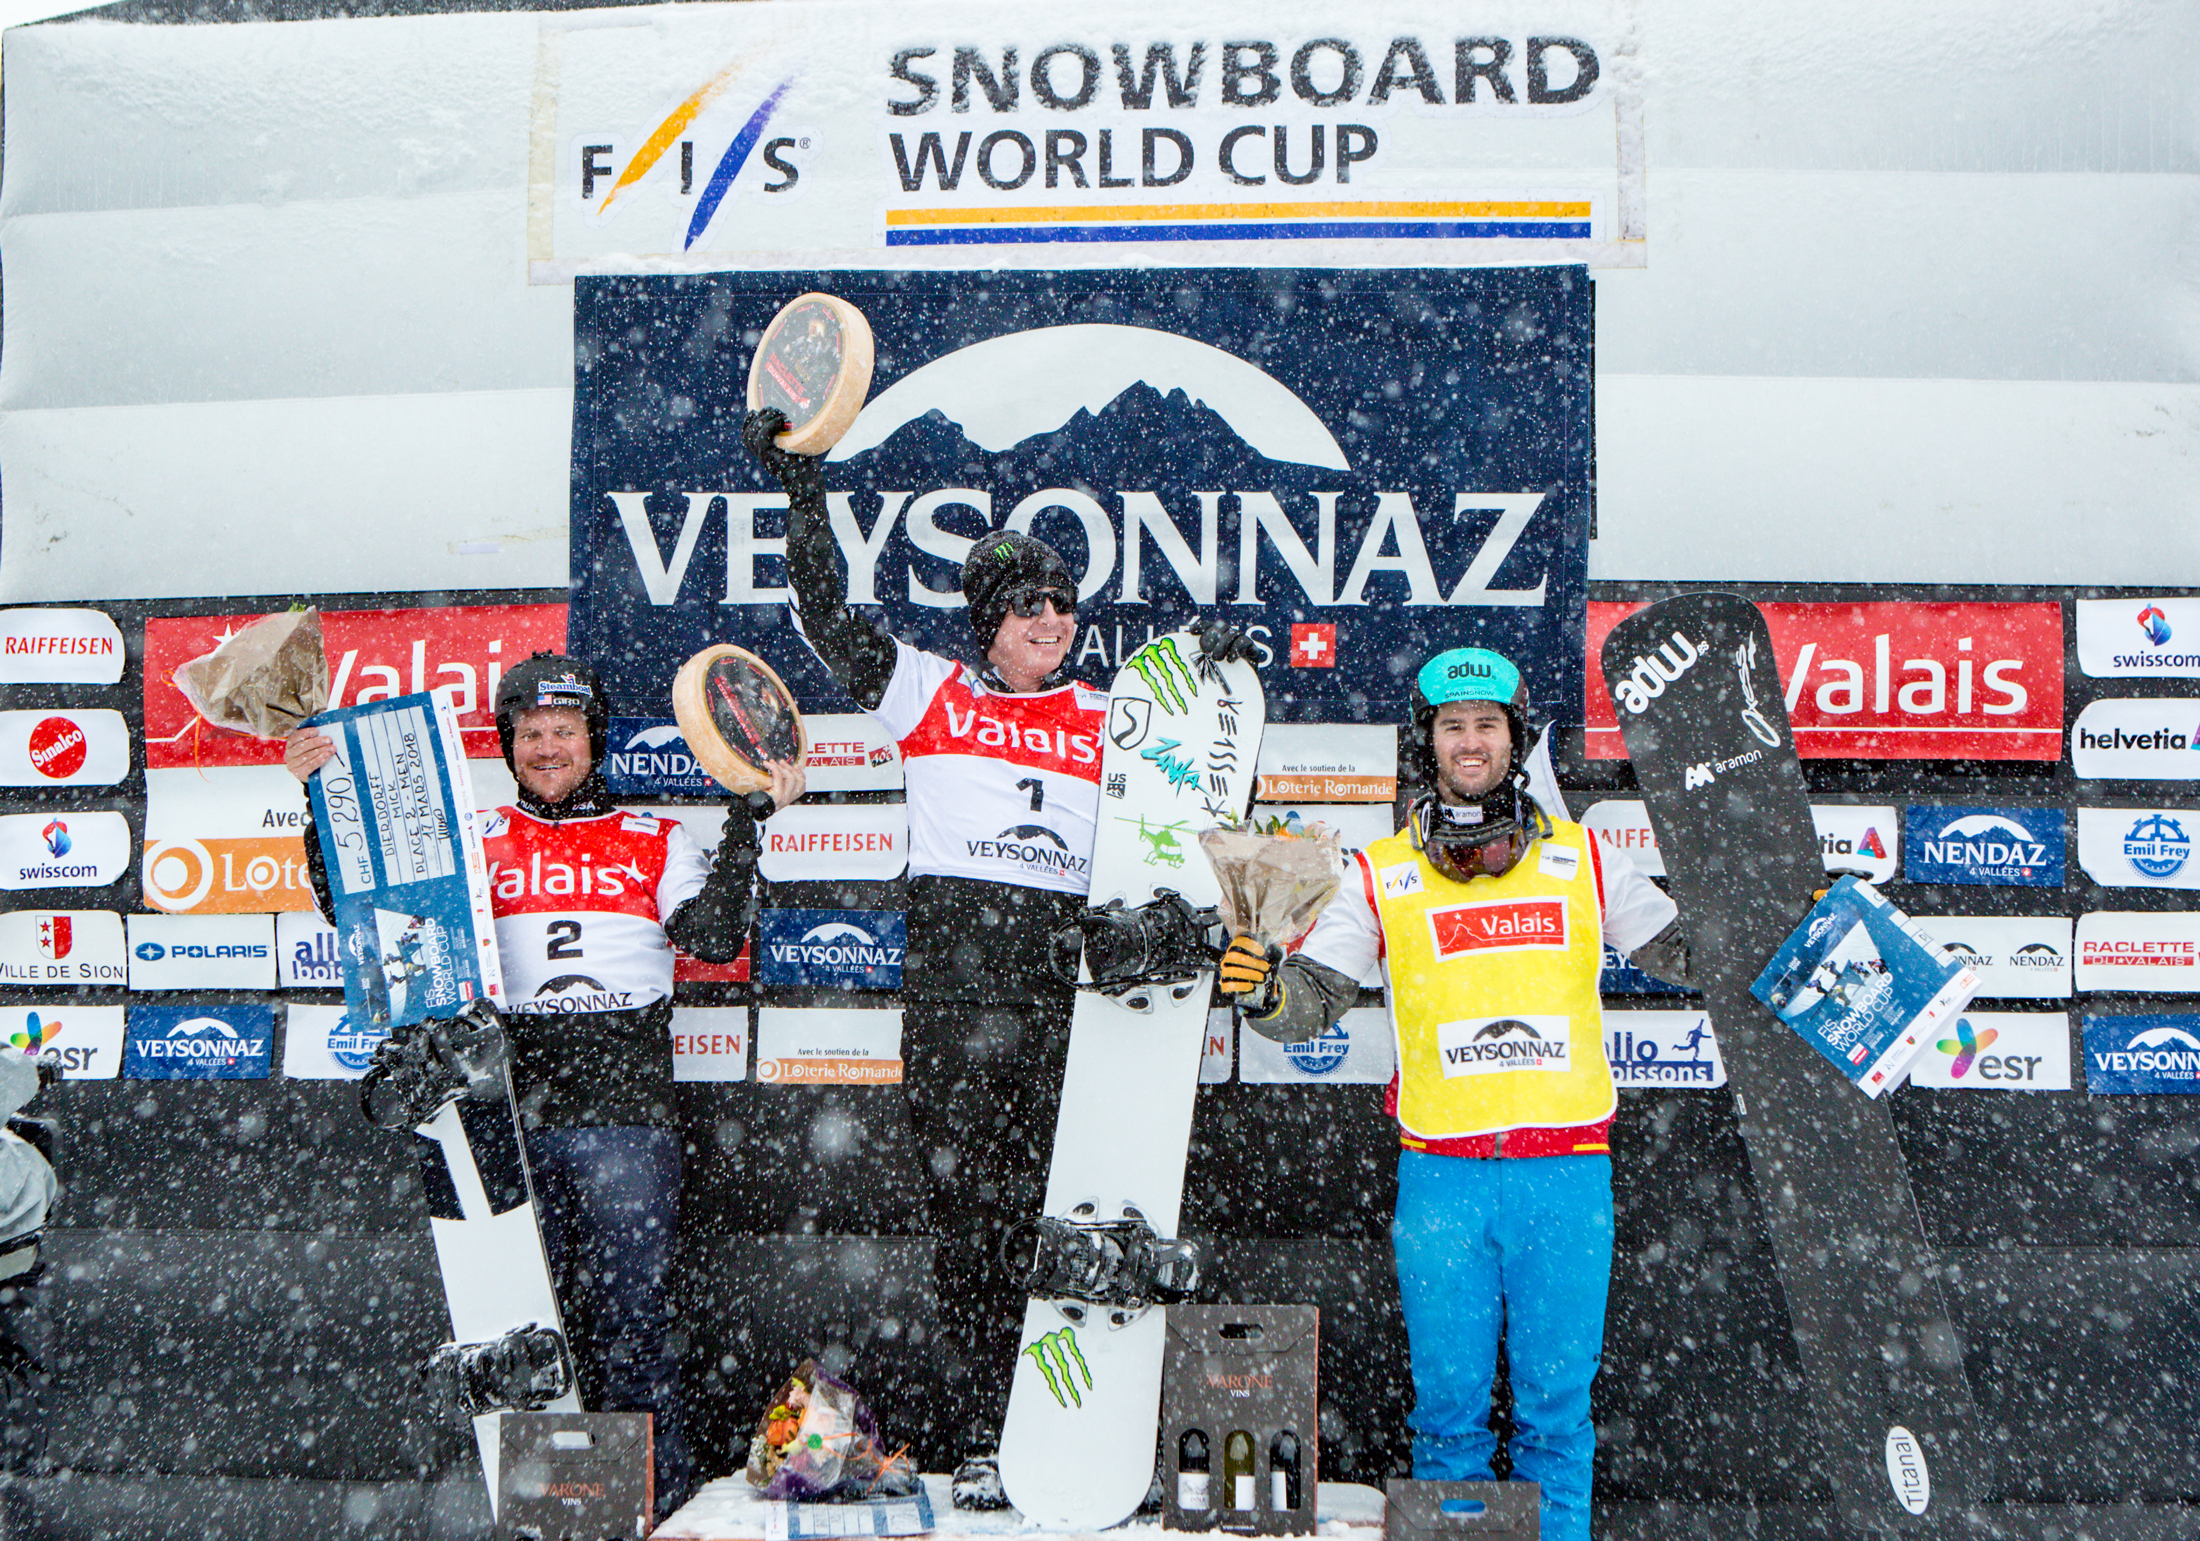 Nate Holland and Mick Dierdorff celebrate their 1-2 finish in Saturday's FIS Snowboardcross World Cup Veysonnaz, Switzerland. (FIS)